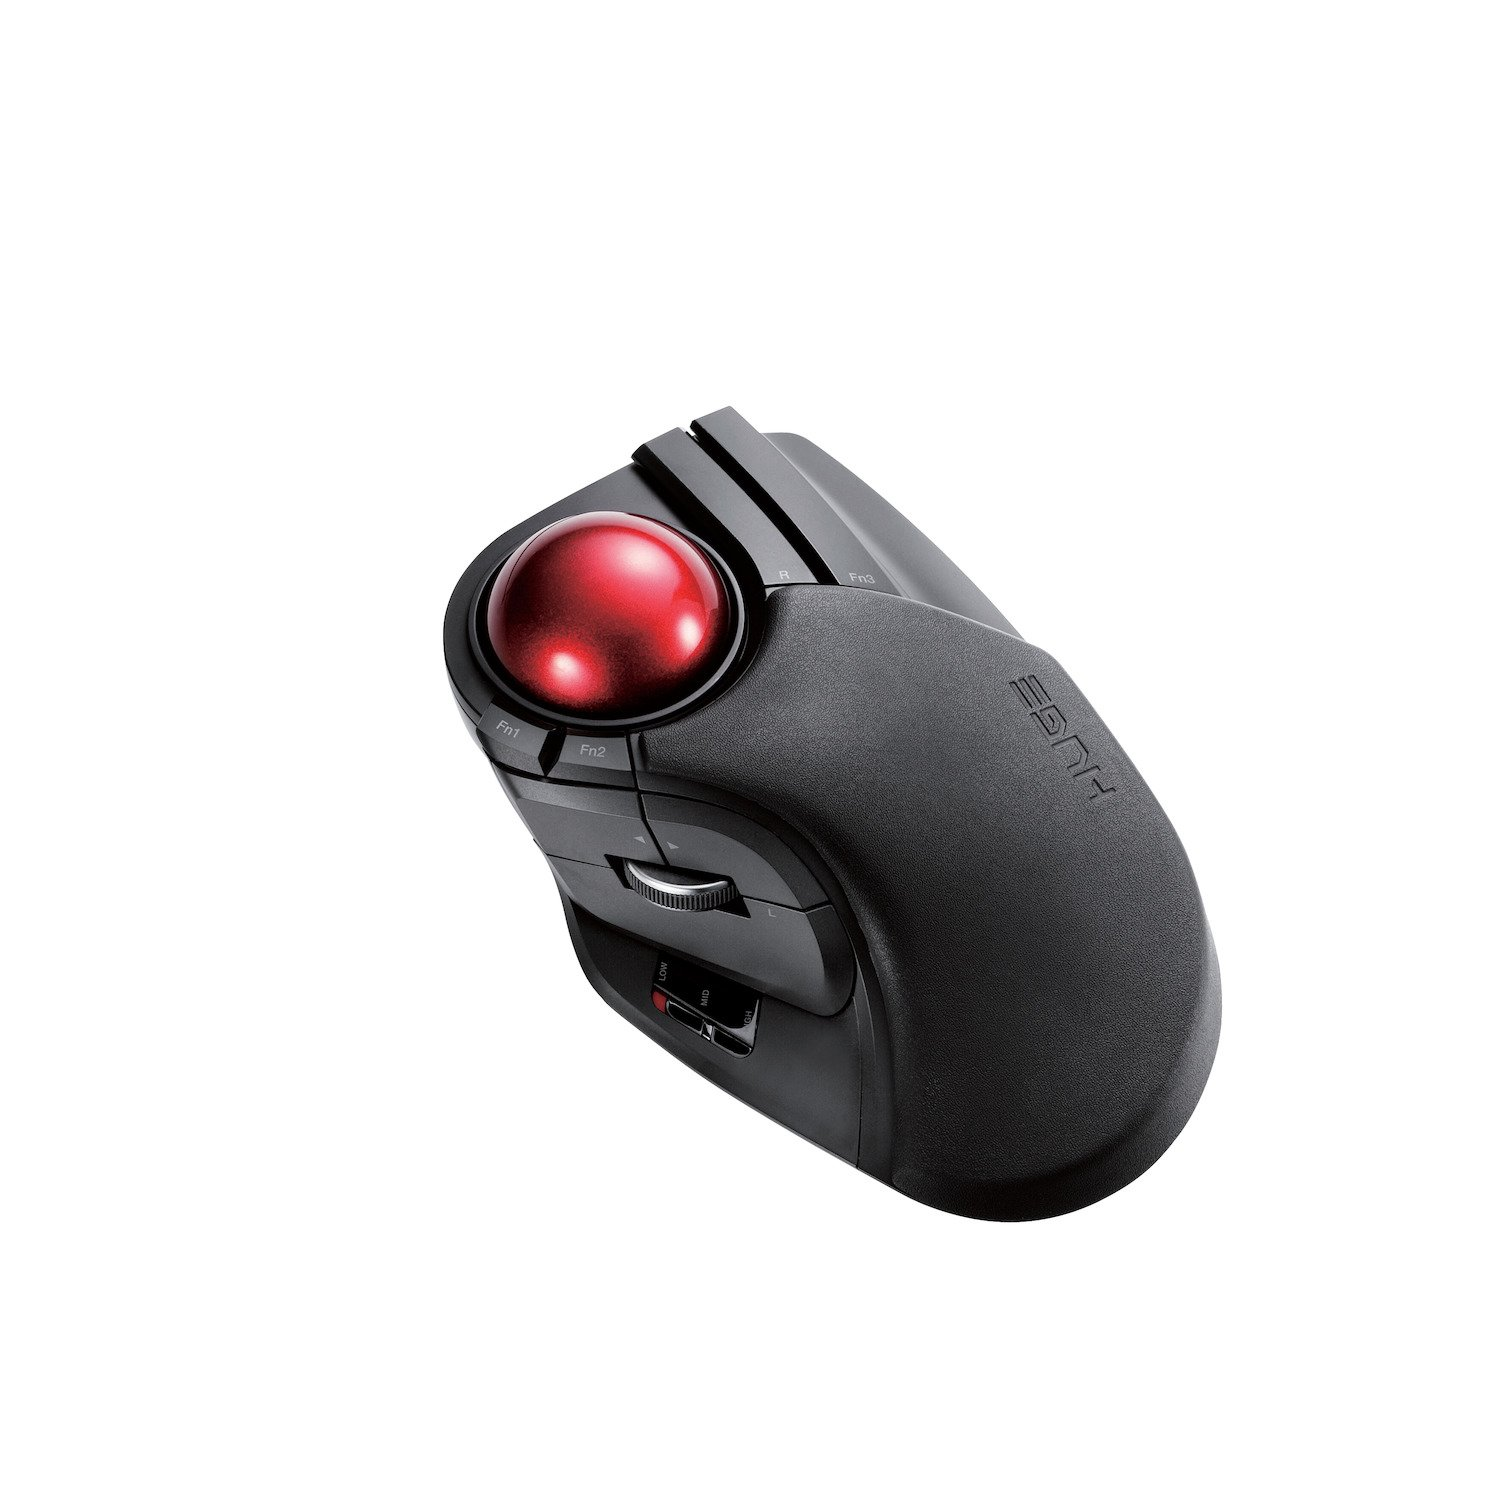 ELECOM M-HT1DRBK Wireless Trackball Mouse - Extra Large Ergonomic Design, 8-Button Function with Smooth Tracking, Black by ELECOM